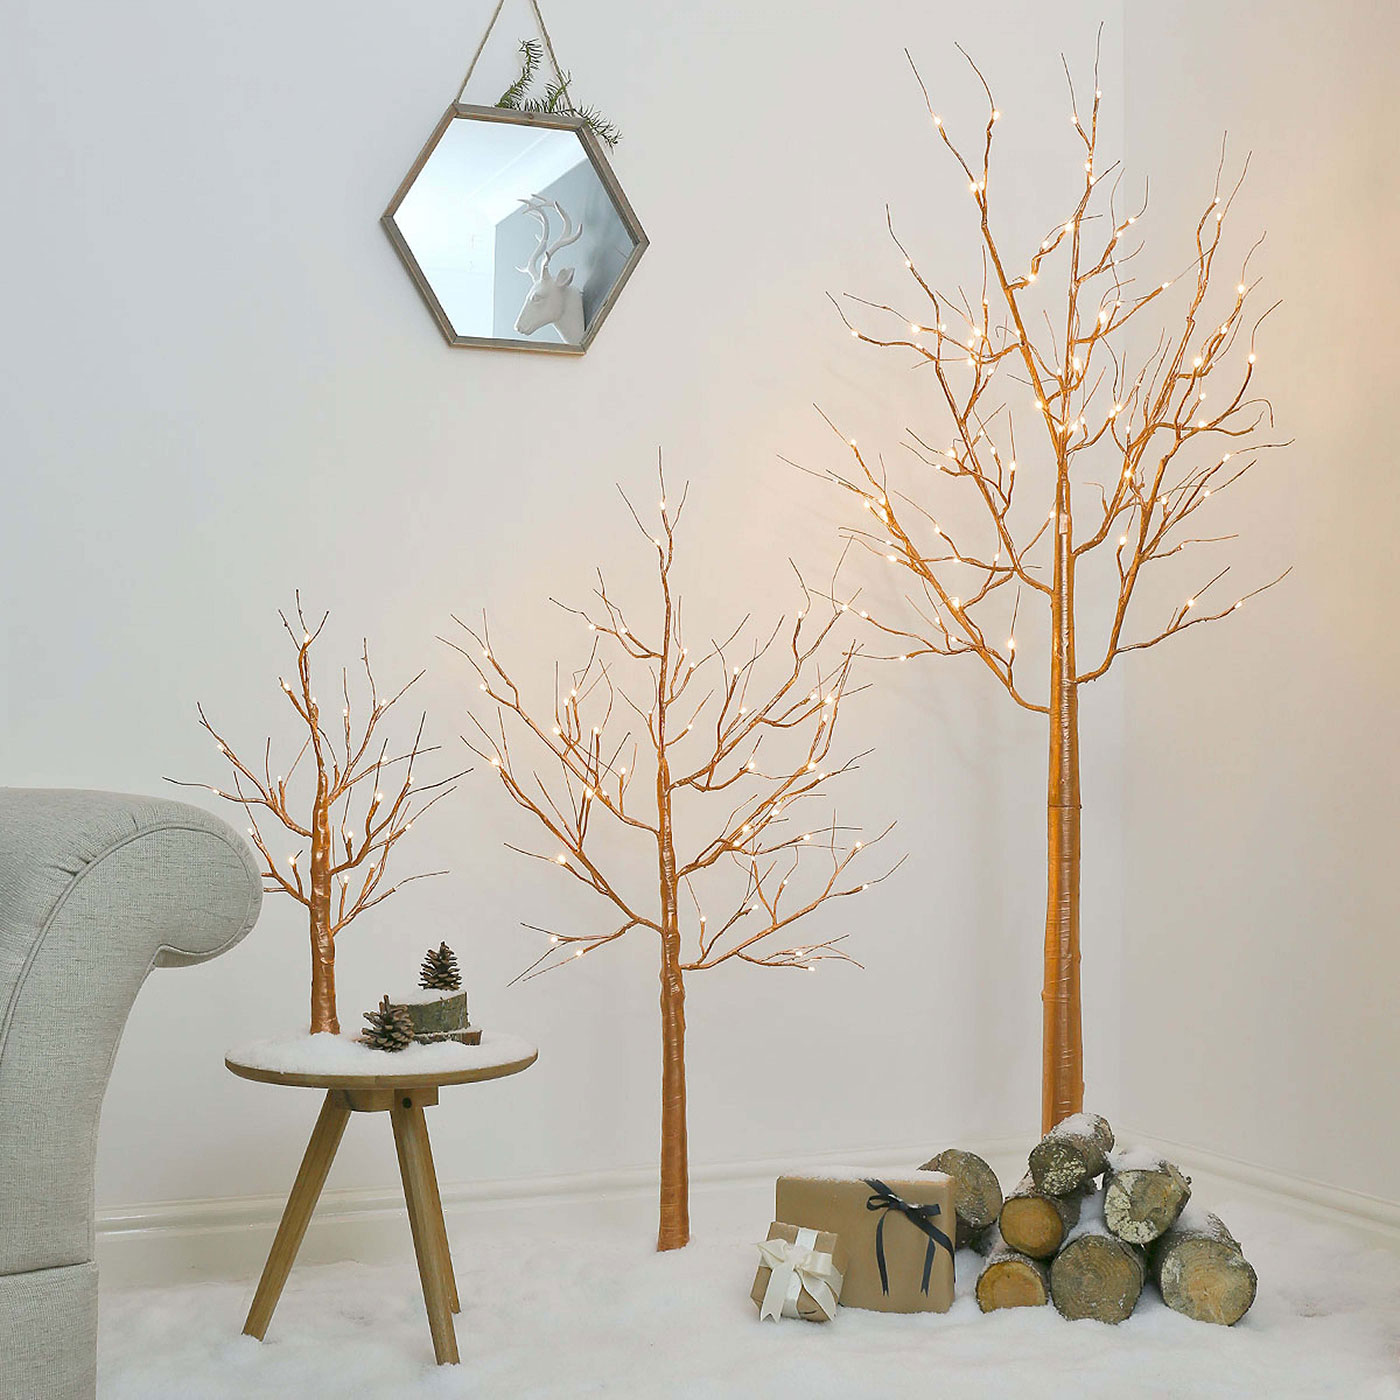 LED trees in the interior